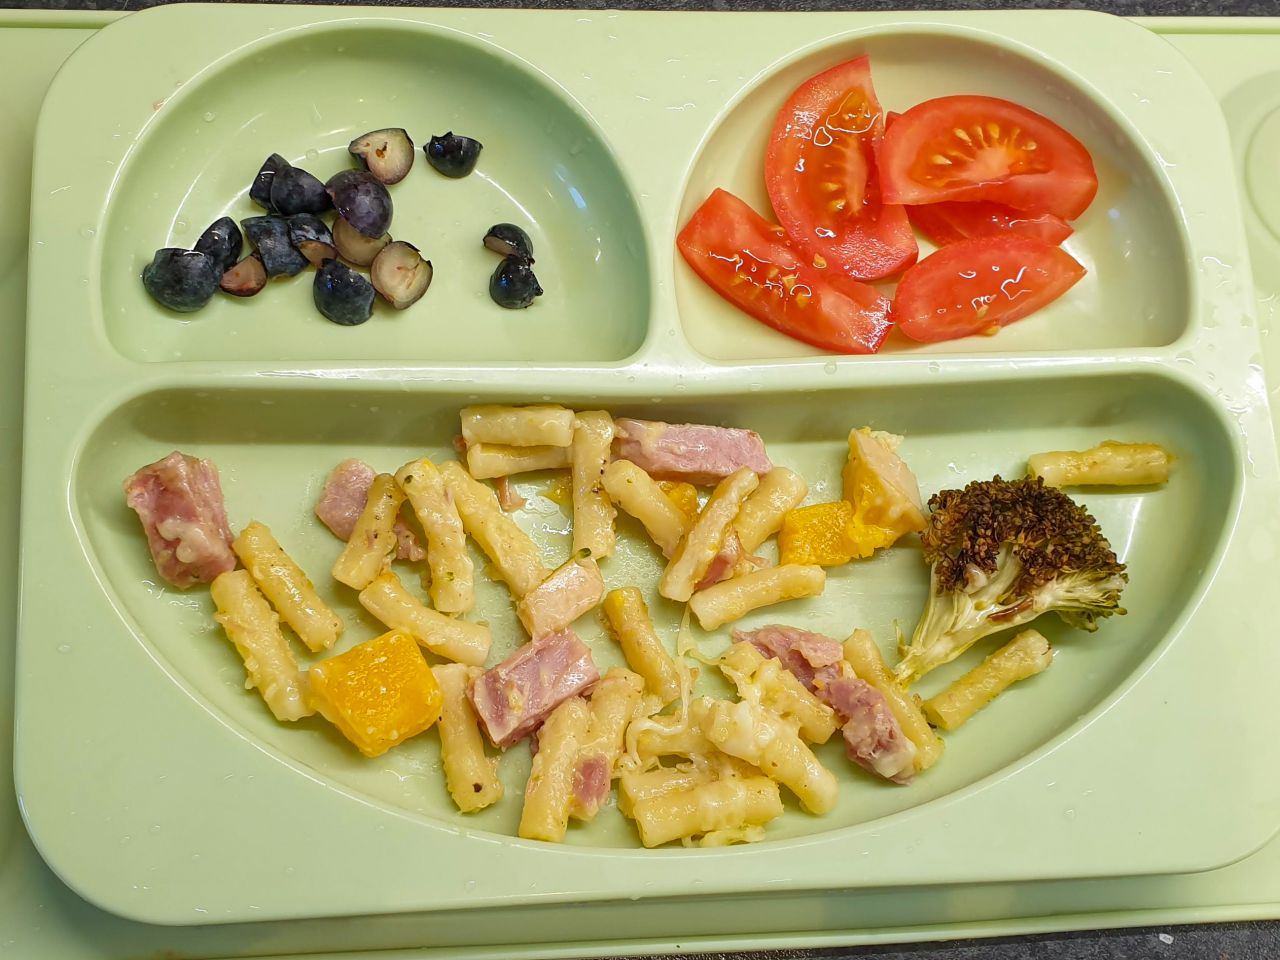 Baby led weaning meal - ham & macaroni cheese, tomatoes & blueberries